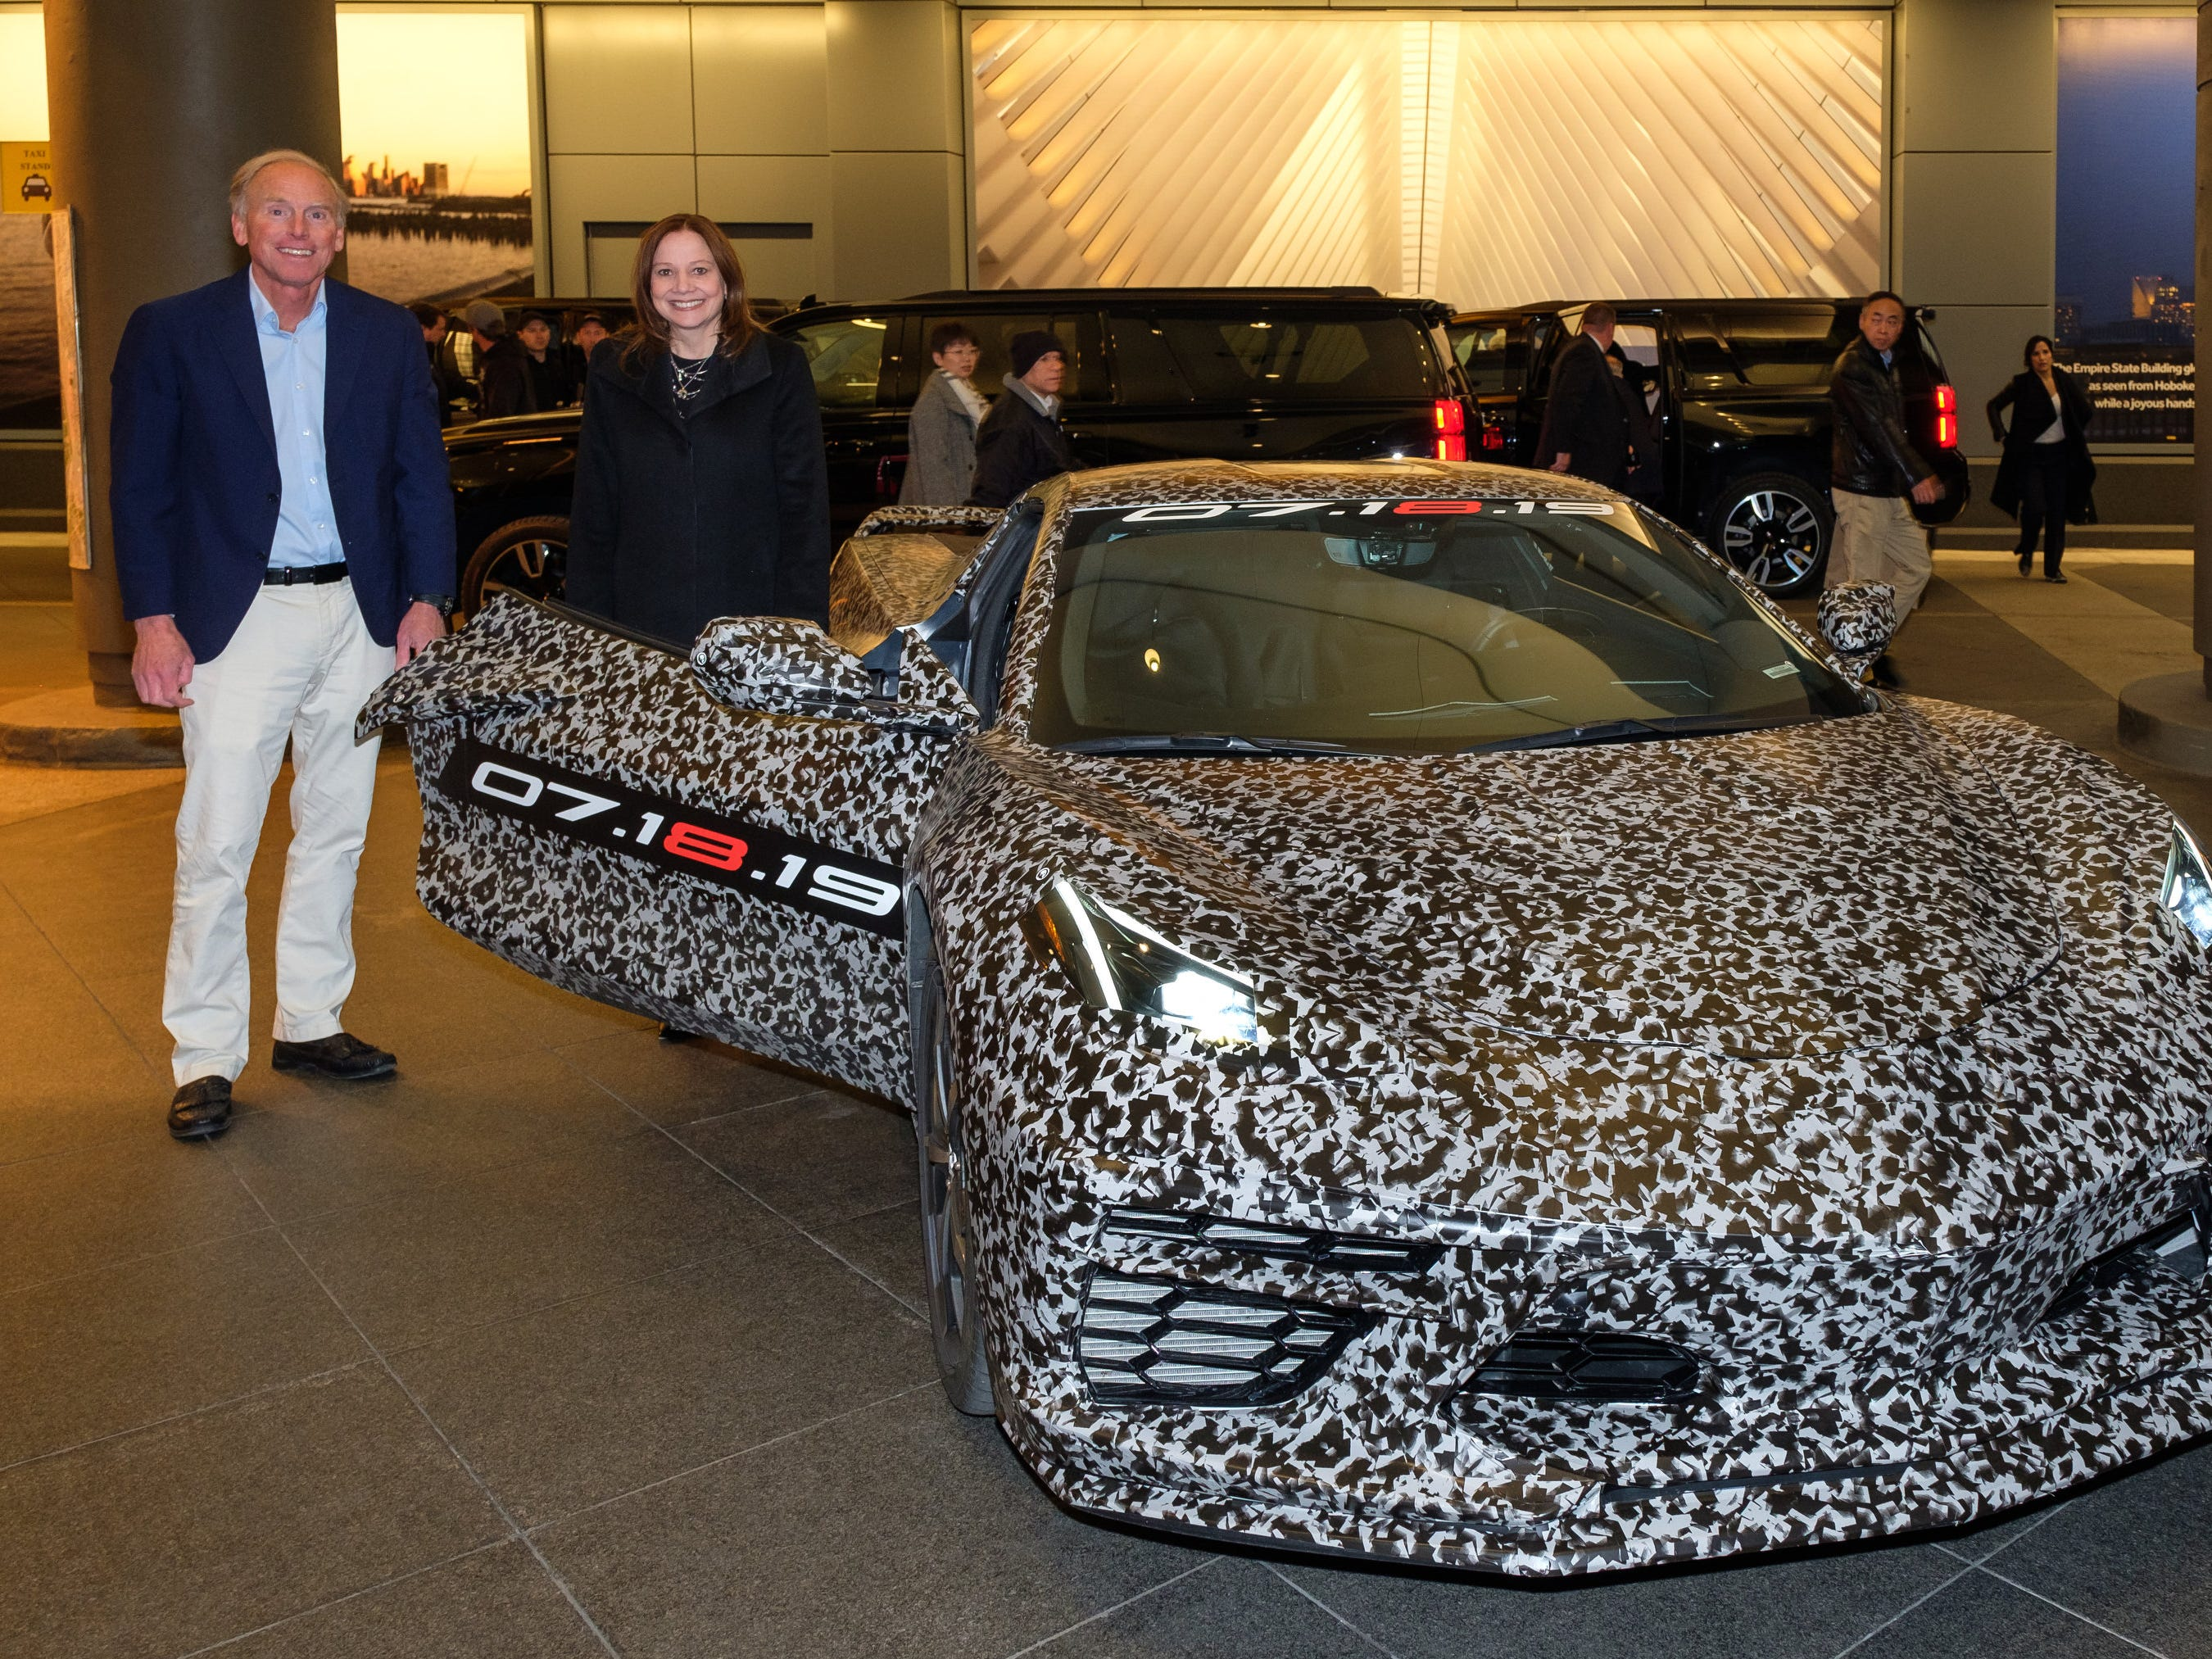 Chevrolet Corvette Chief Engineer Tadge Juechter and General Motors Chairman and CEO Mary Barra Thursday, April 11, 2019 with a camouflaged next generation Corvette near Times Square in New York, New York. The next generation Corvette will be unveiled on July 18. (Photo by Steve Fecht for Chevrolet)